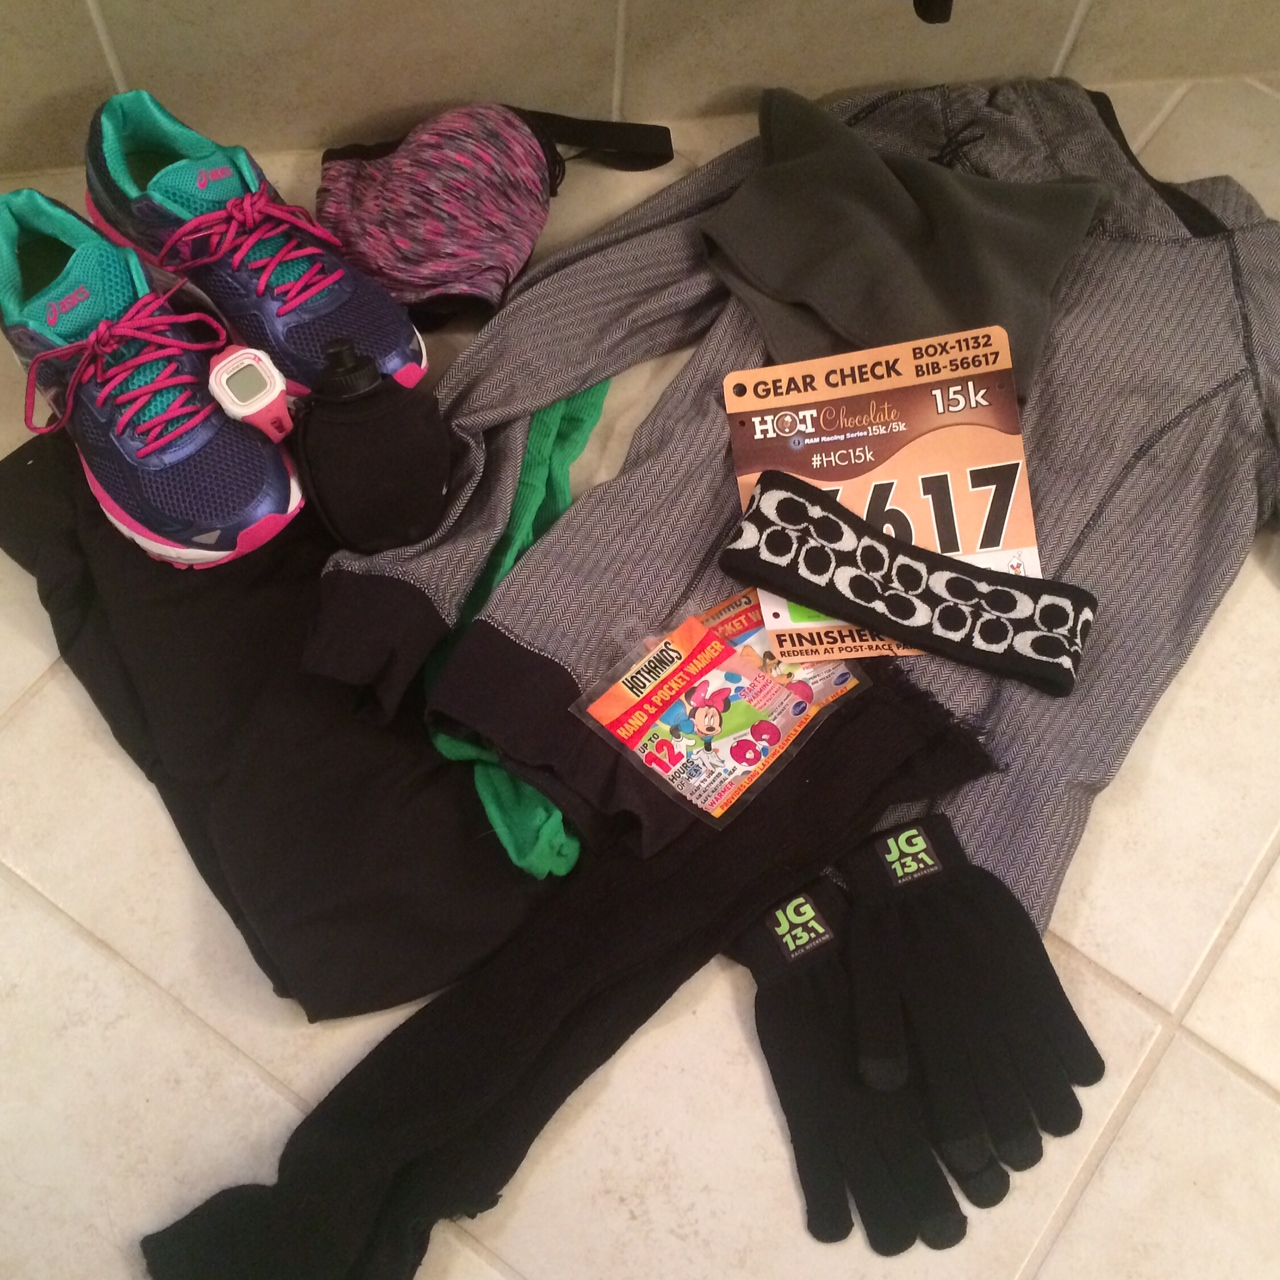 Hot Chocolate 15k: the race of 2016 that didn't happen. DNS for me.